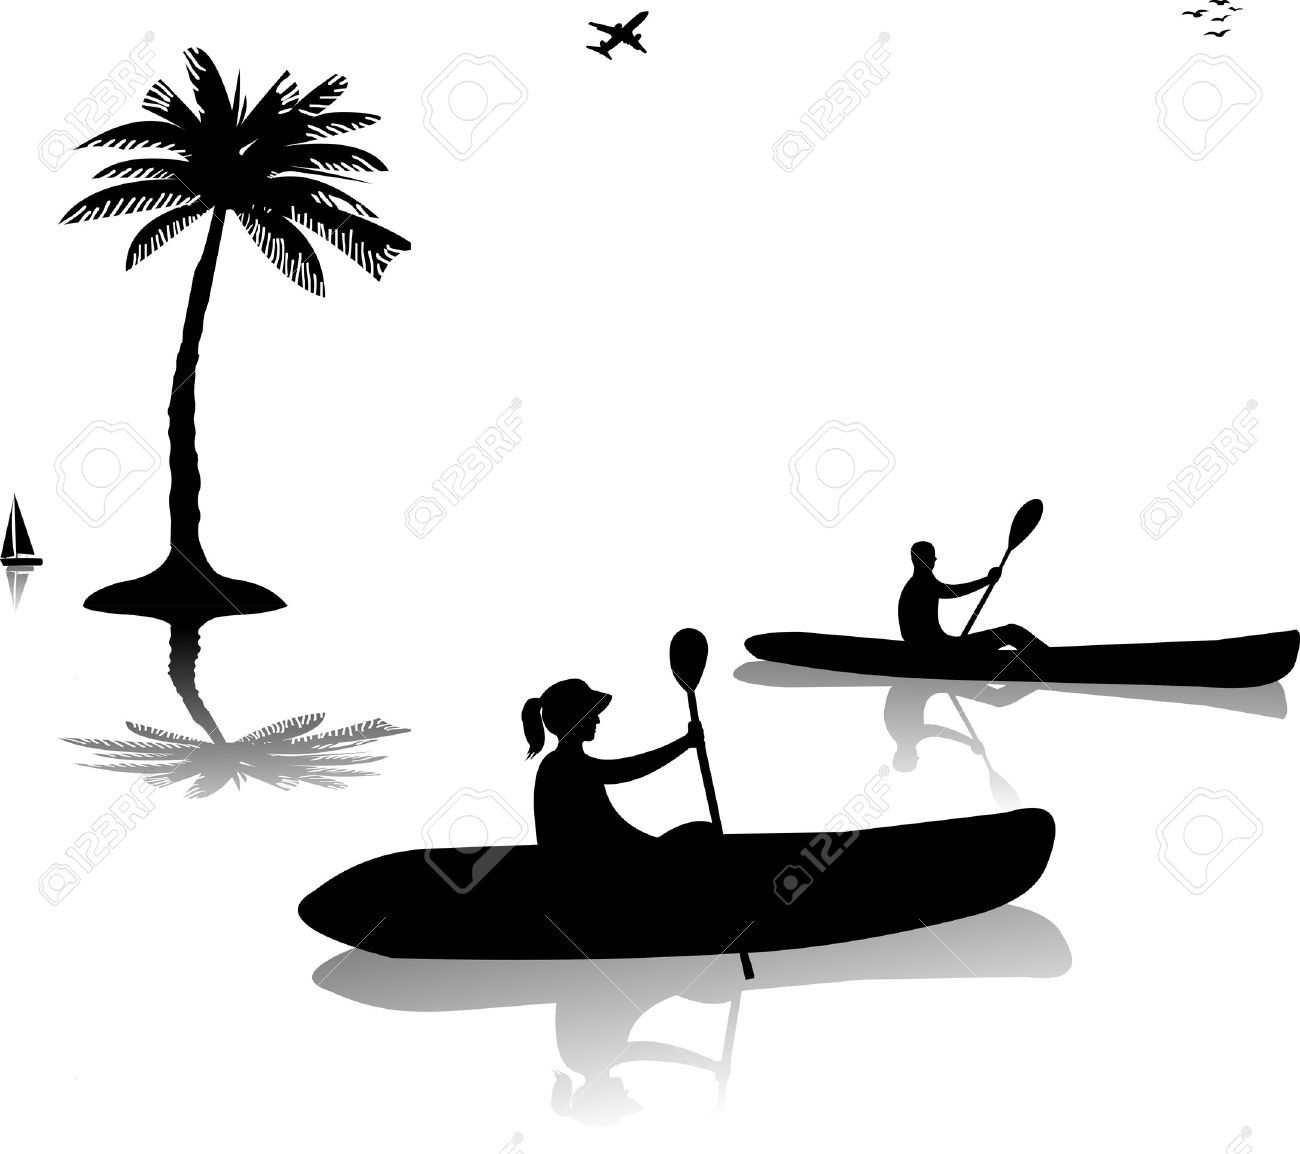 1300x1154 Pin By Keena Brown On Kayak Clipart Collection And Woman